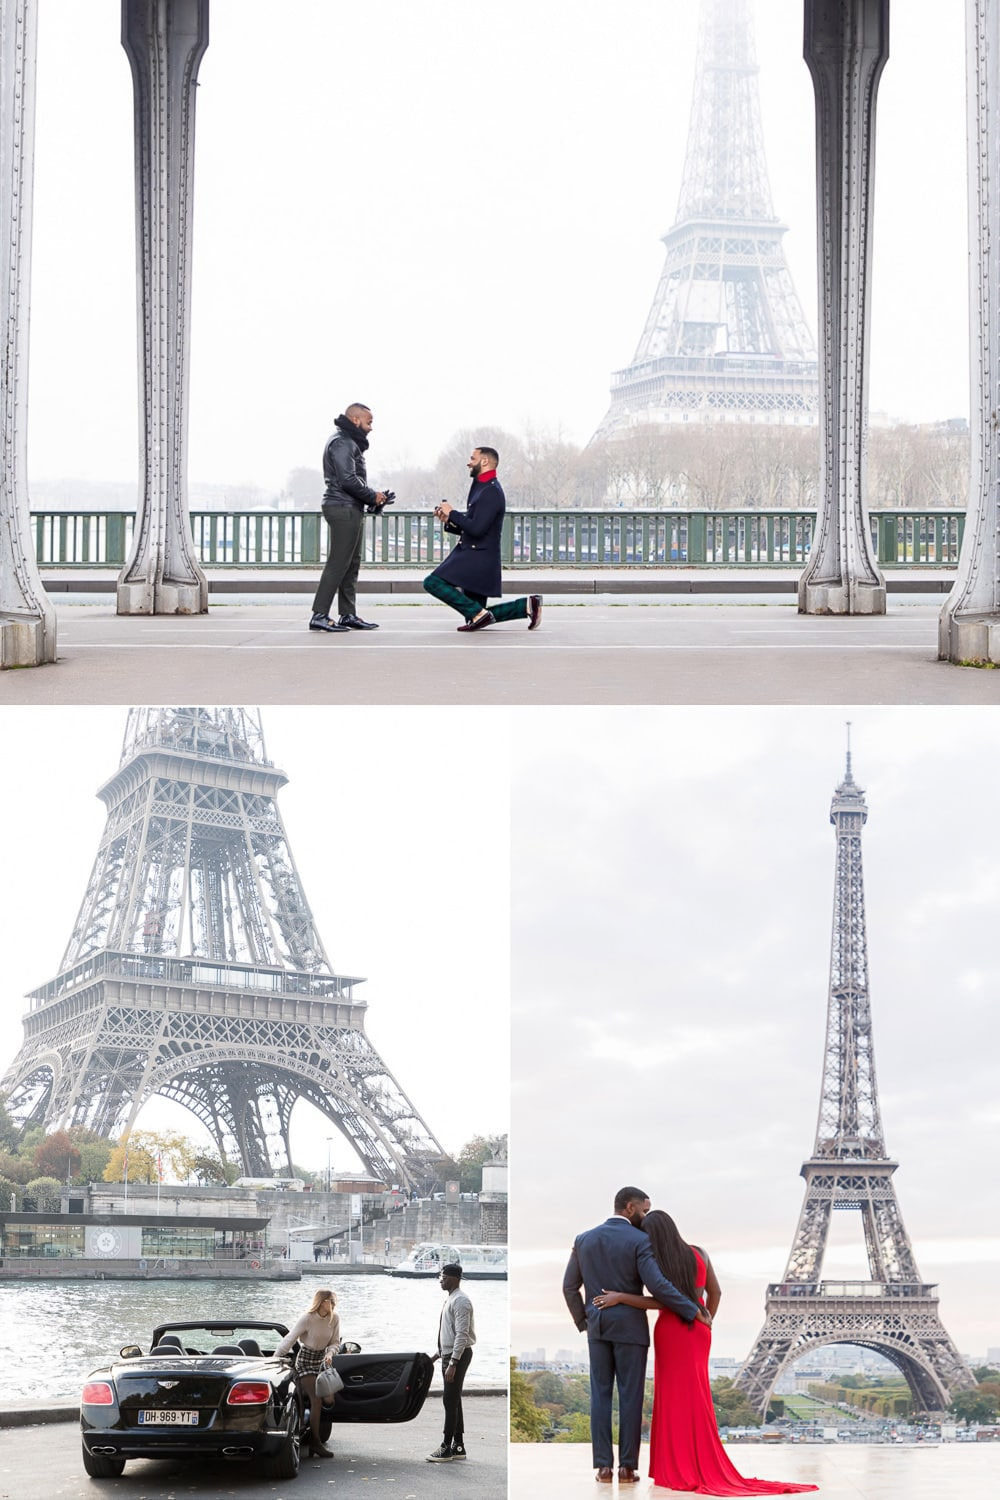 How to propose Paris proposal with Eiffel Tower view